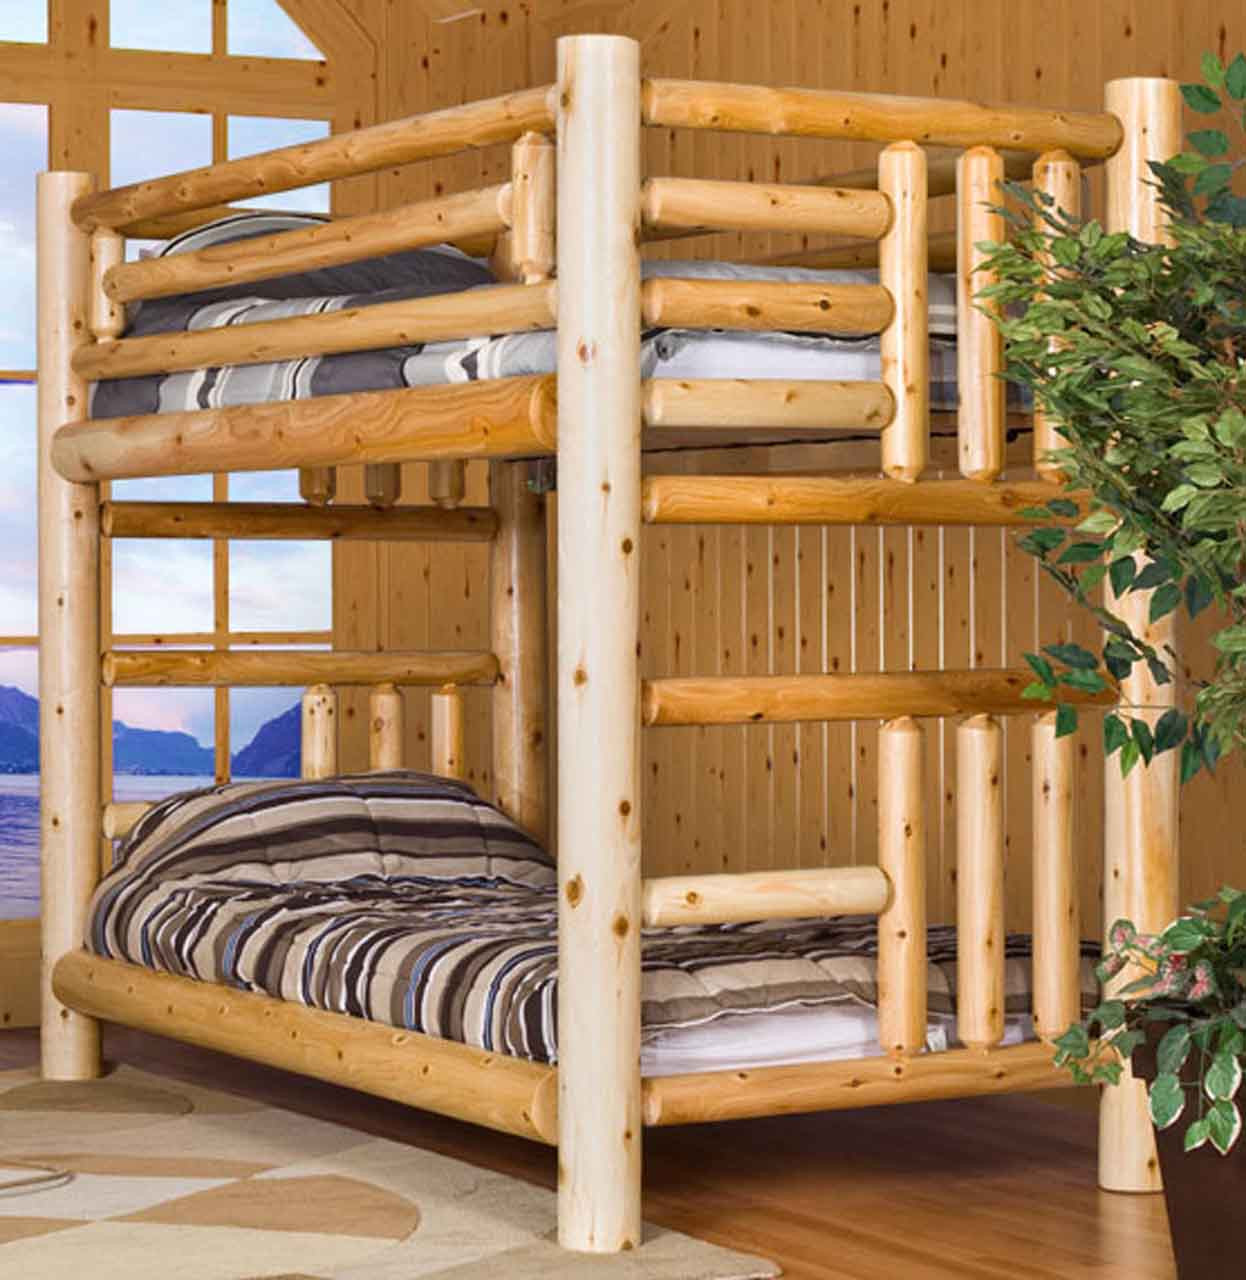 Log Bunk Beds By Leisure Craft Finished Northern Lakes Log Queen Over Queen Bunk Bed